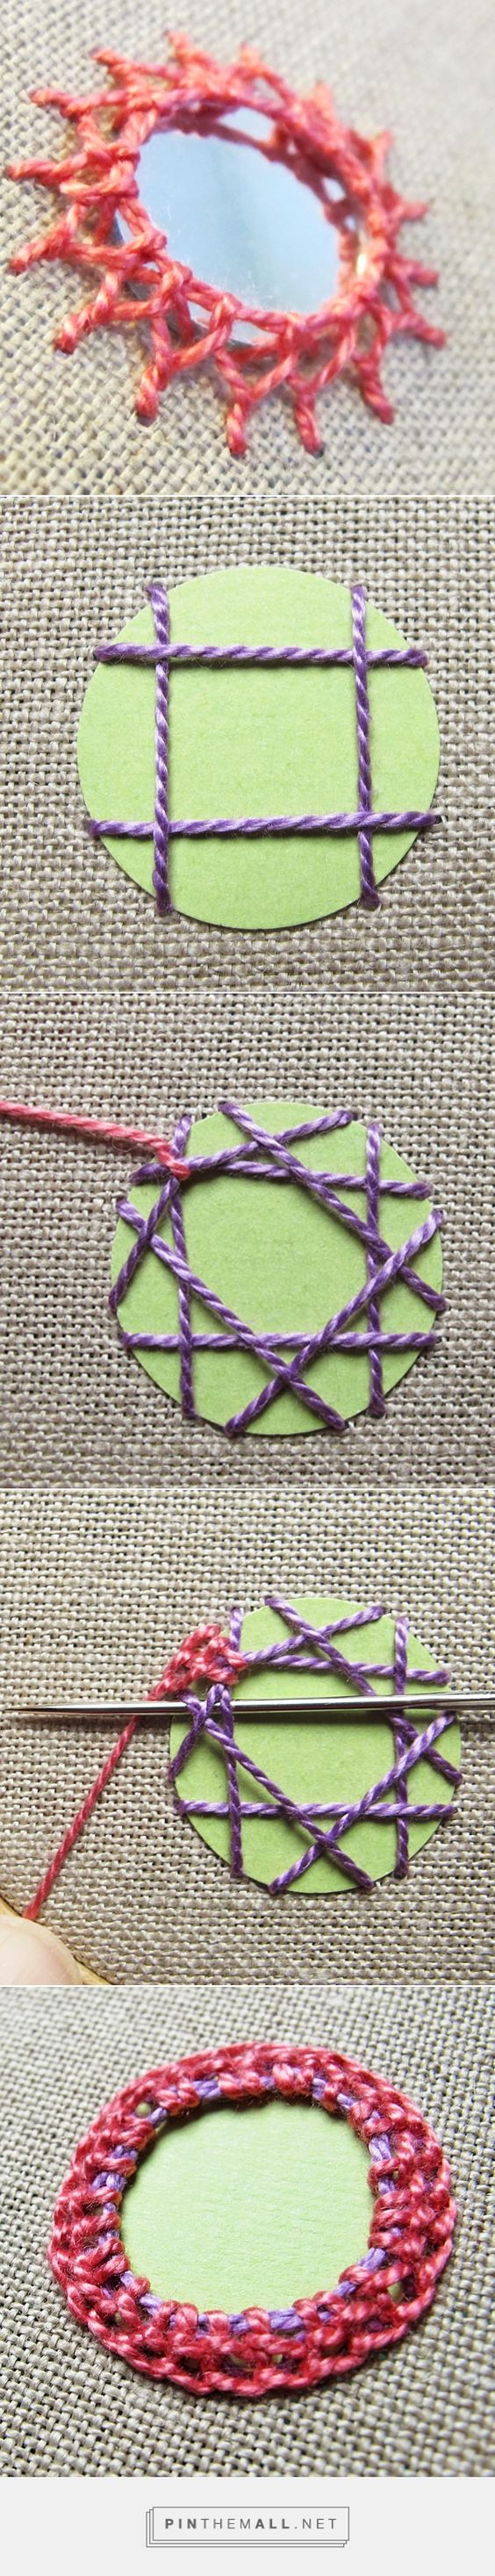 Embroidery tutorial quot add mirrors to or